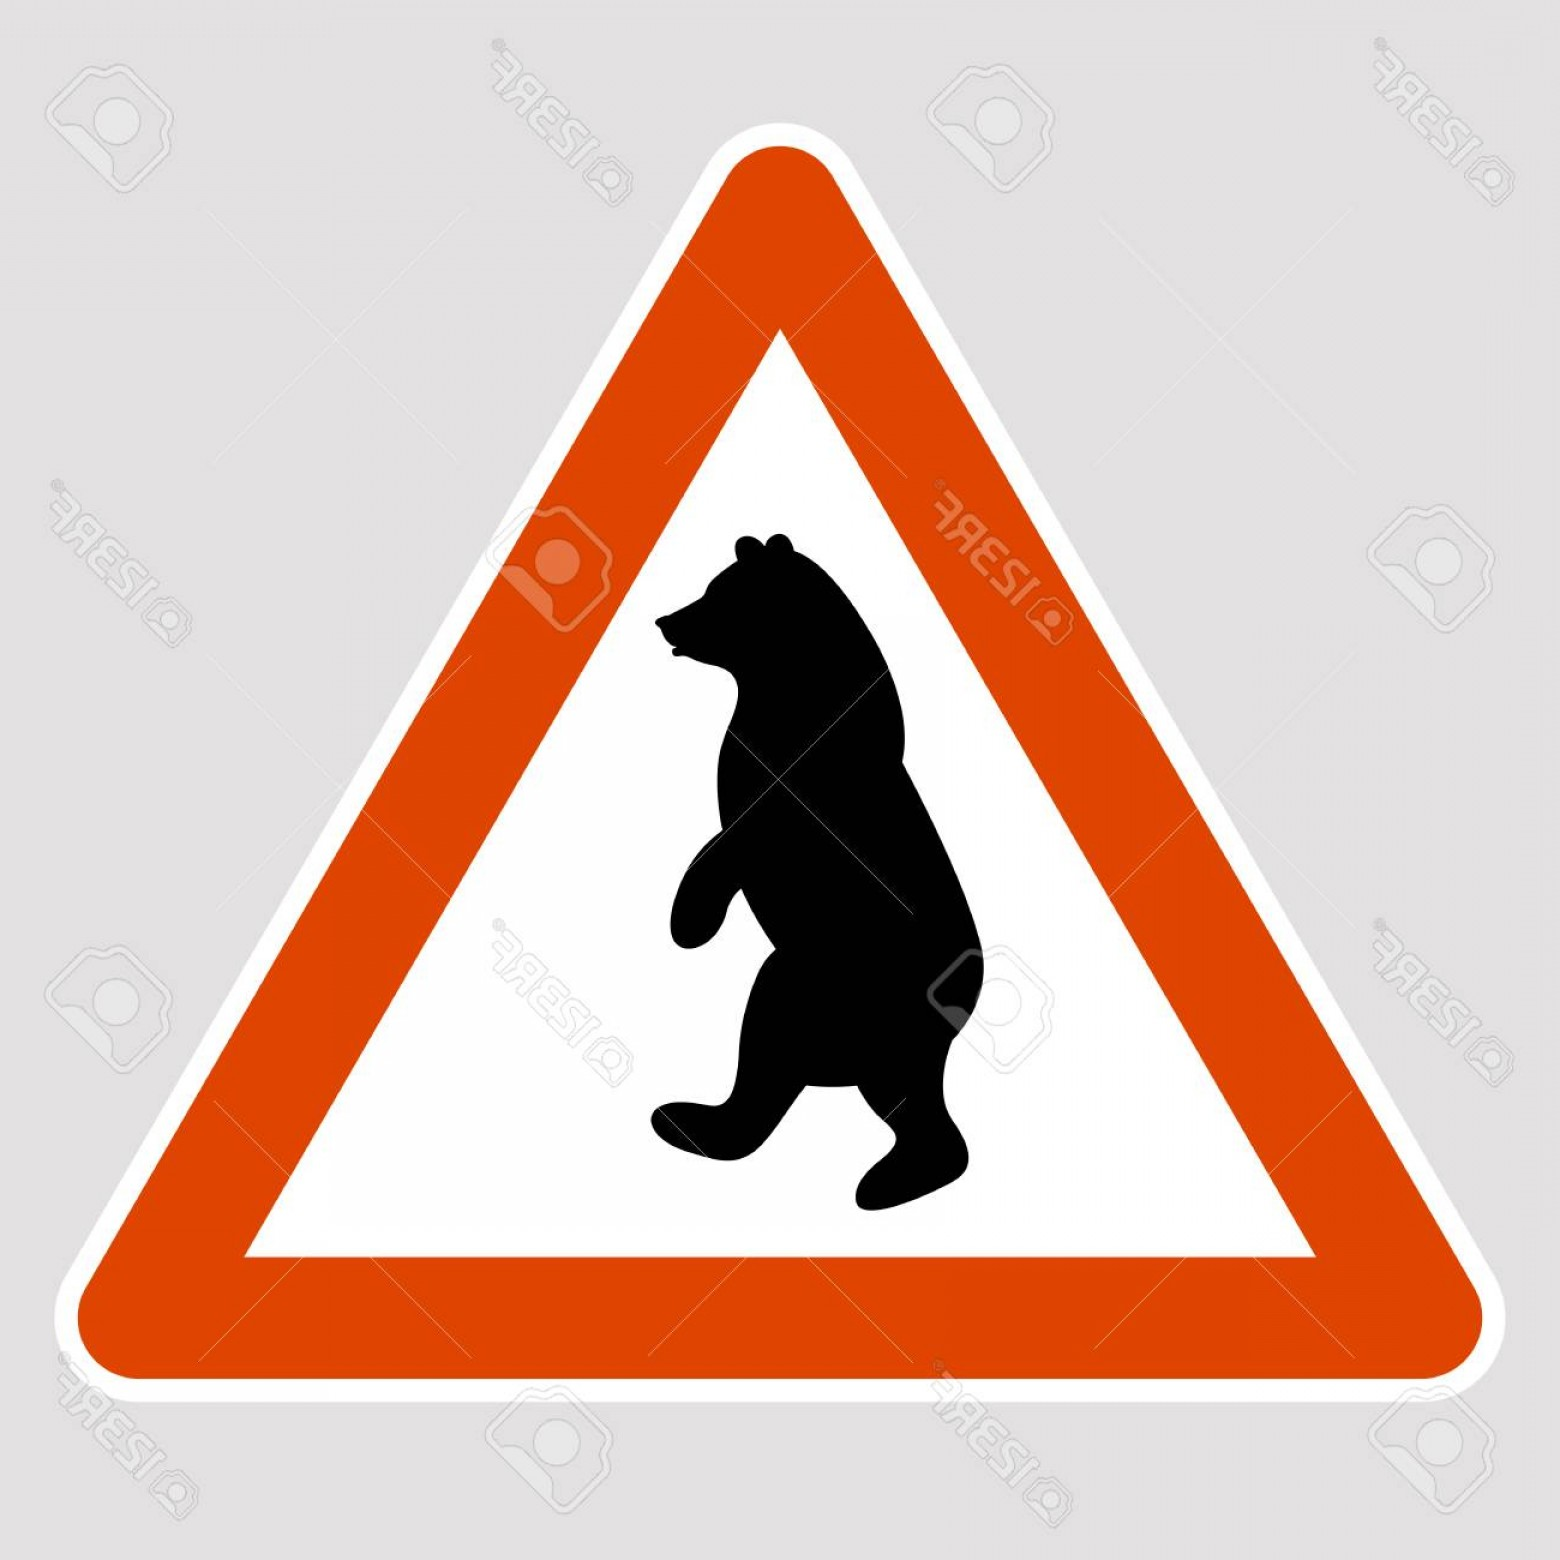 Road Sign Silhouette Vector Bear: Photostock Vector A Bear Black Silhouette Road Sign Vector Illustration Profile